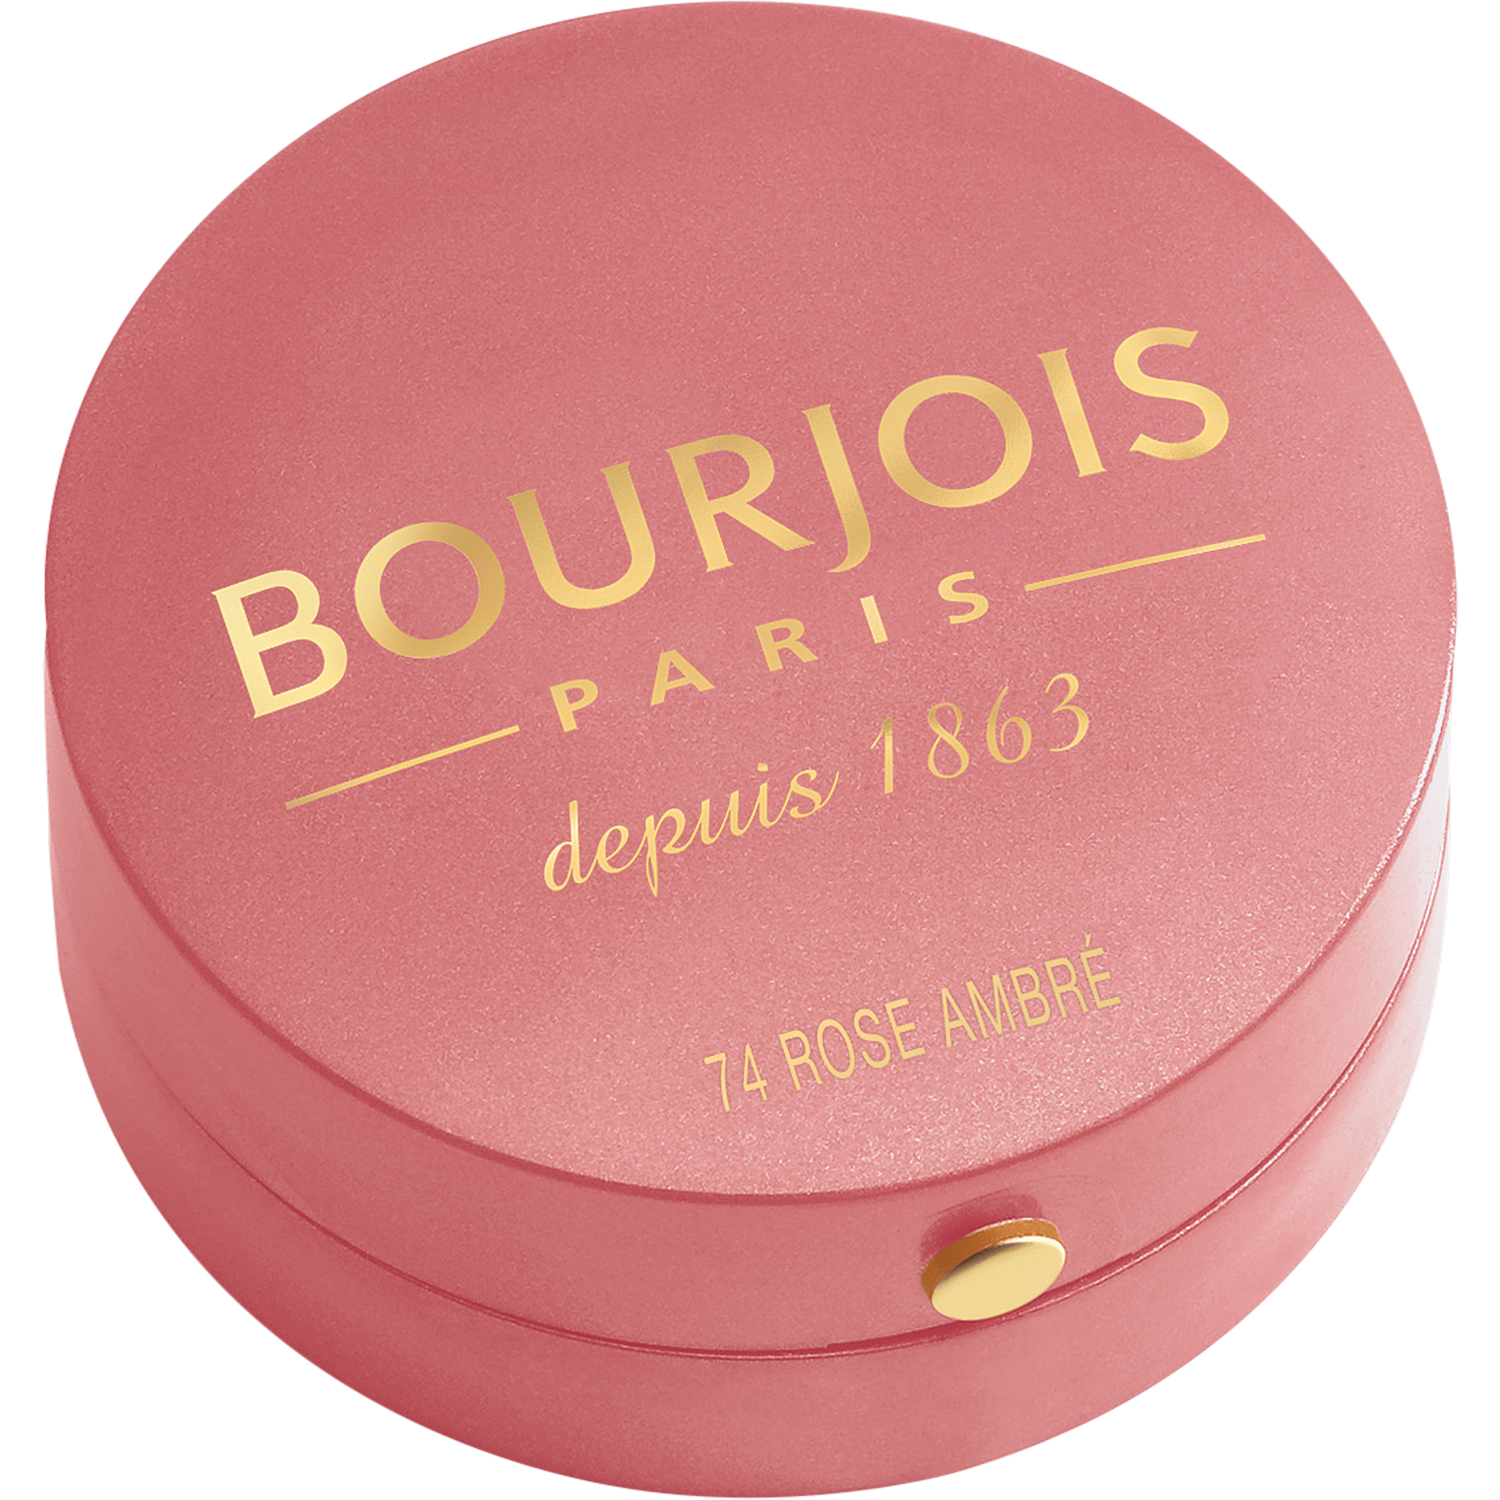 BOURJOIS Румяна для лица 74 / Blusher rose ambre - Румяна